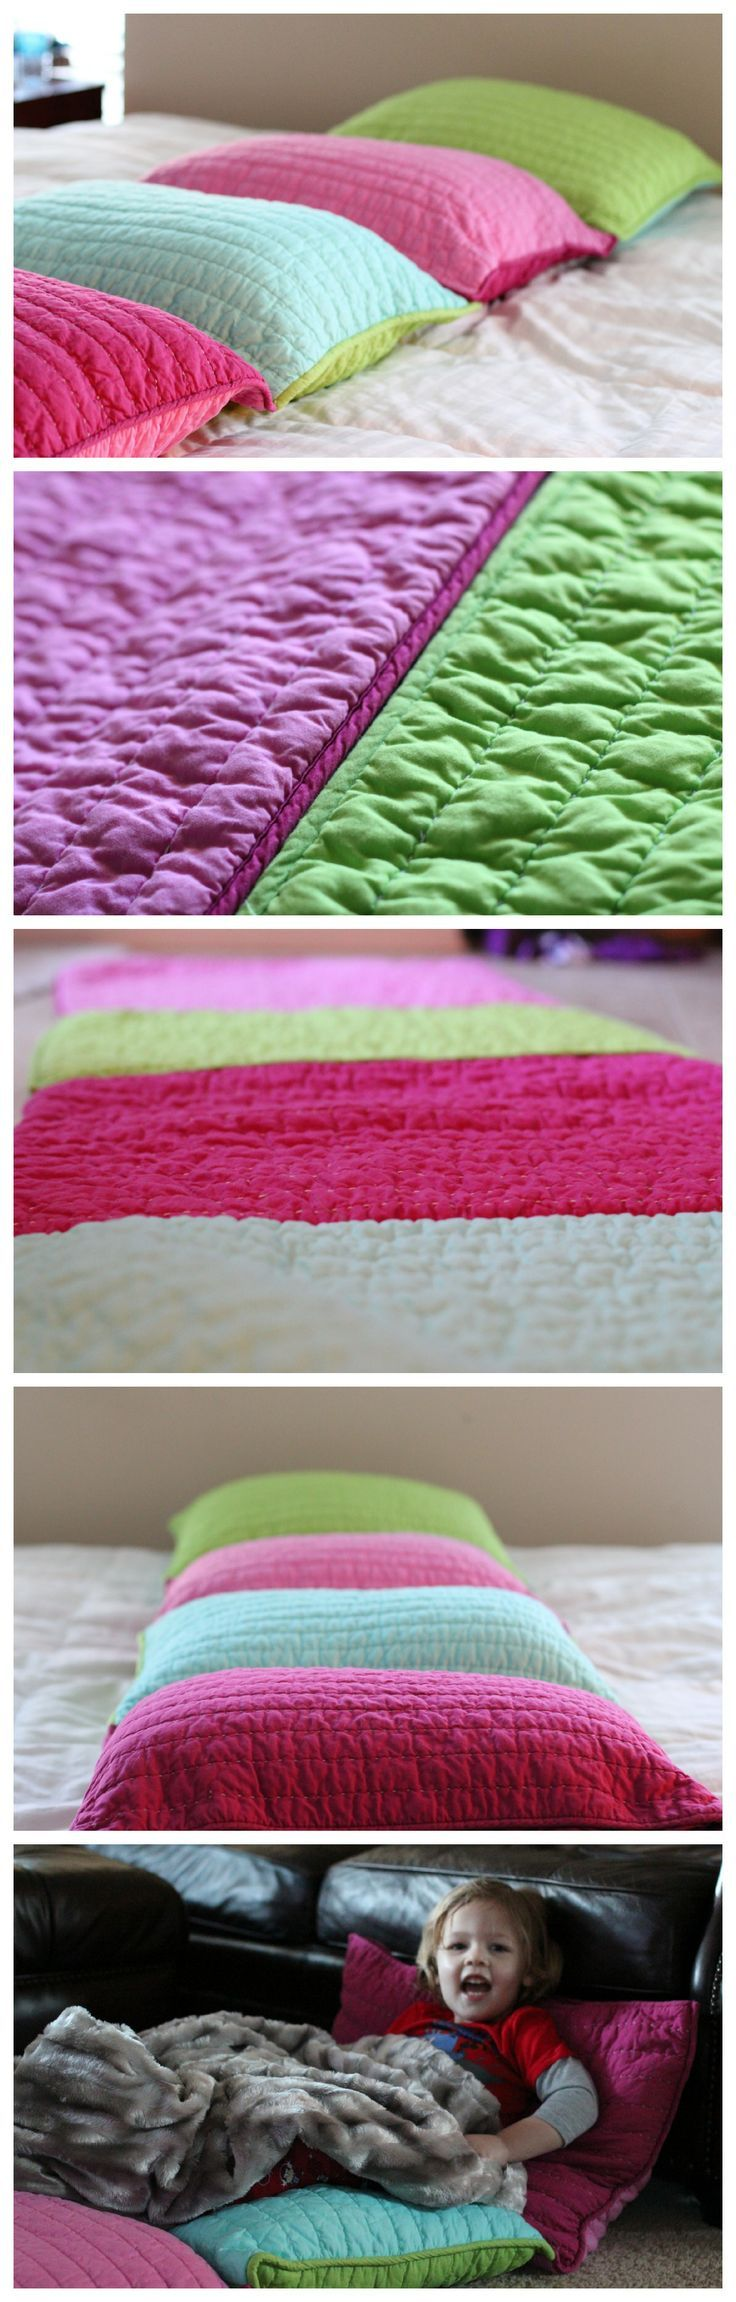 how to make a cozy pillow bed | beginner sewing projects, pillow